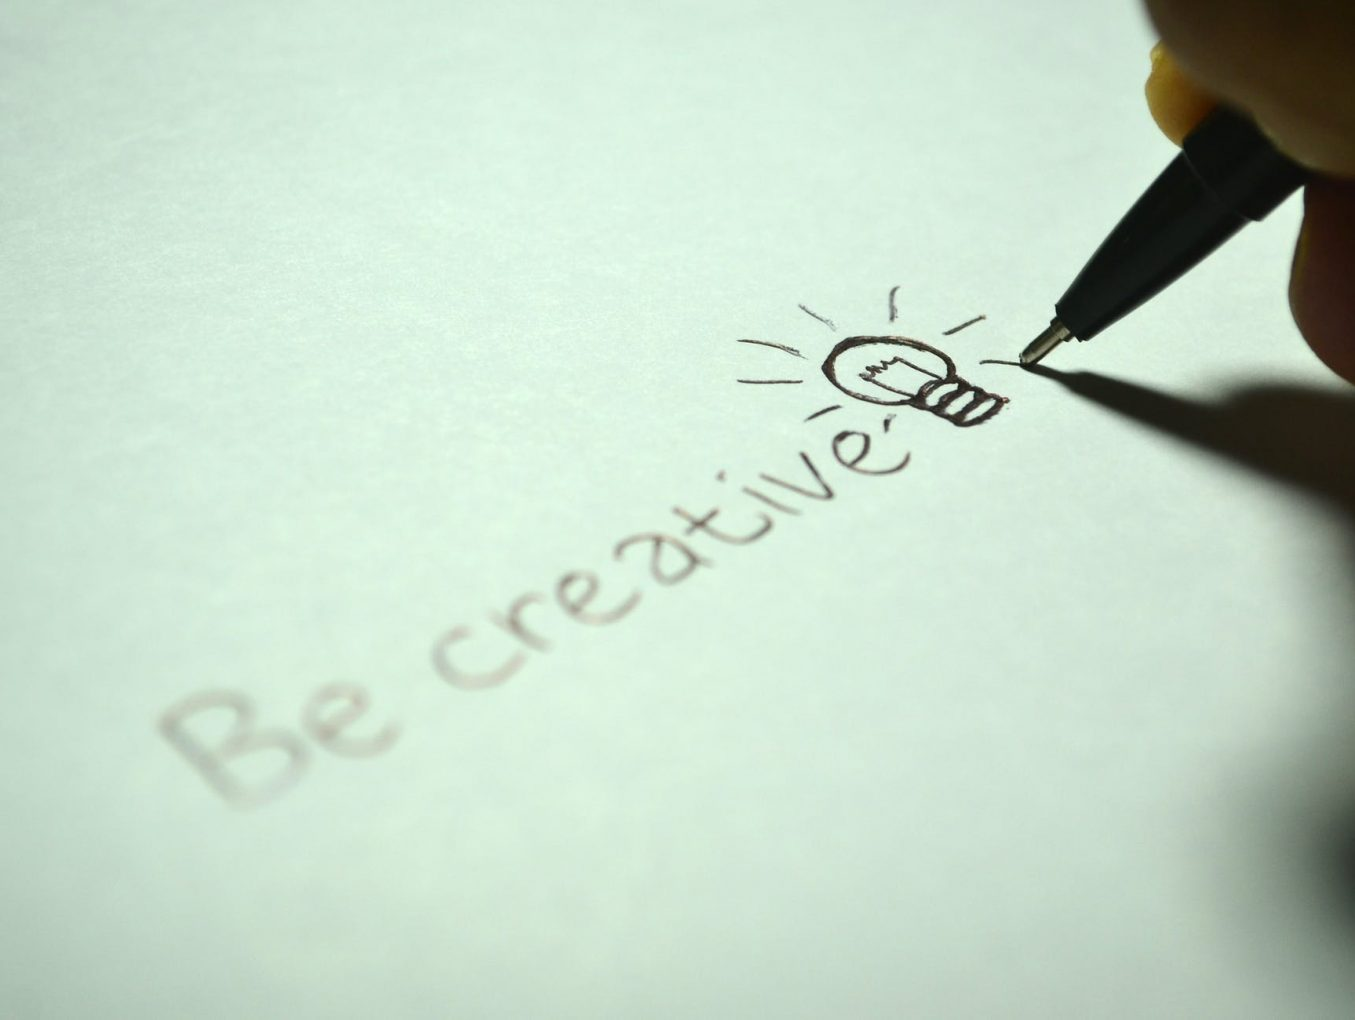 How to employ creative marketing strategies for business success